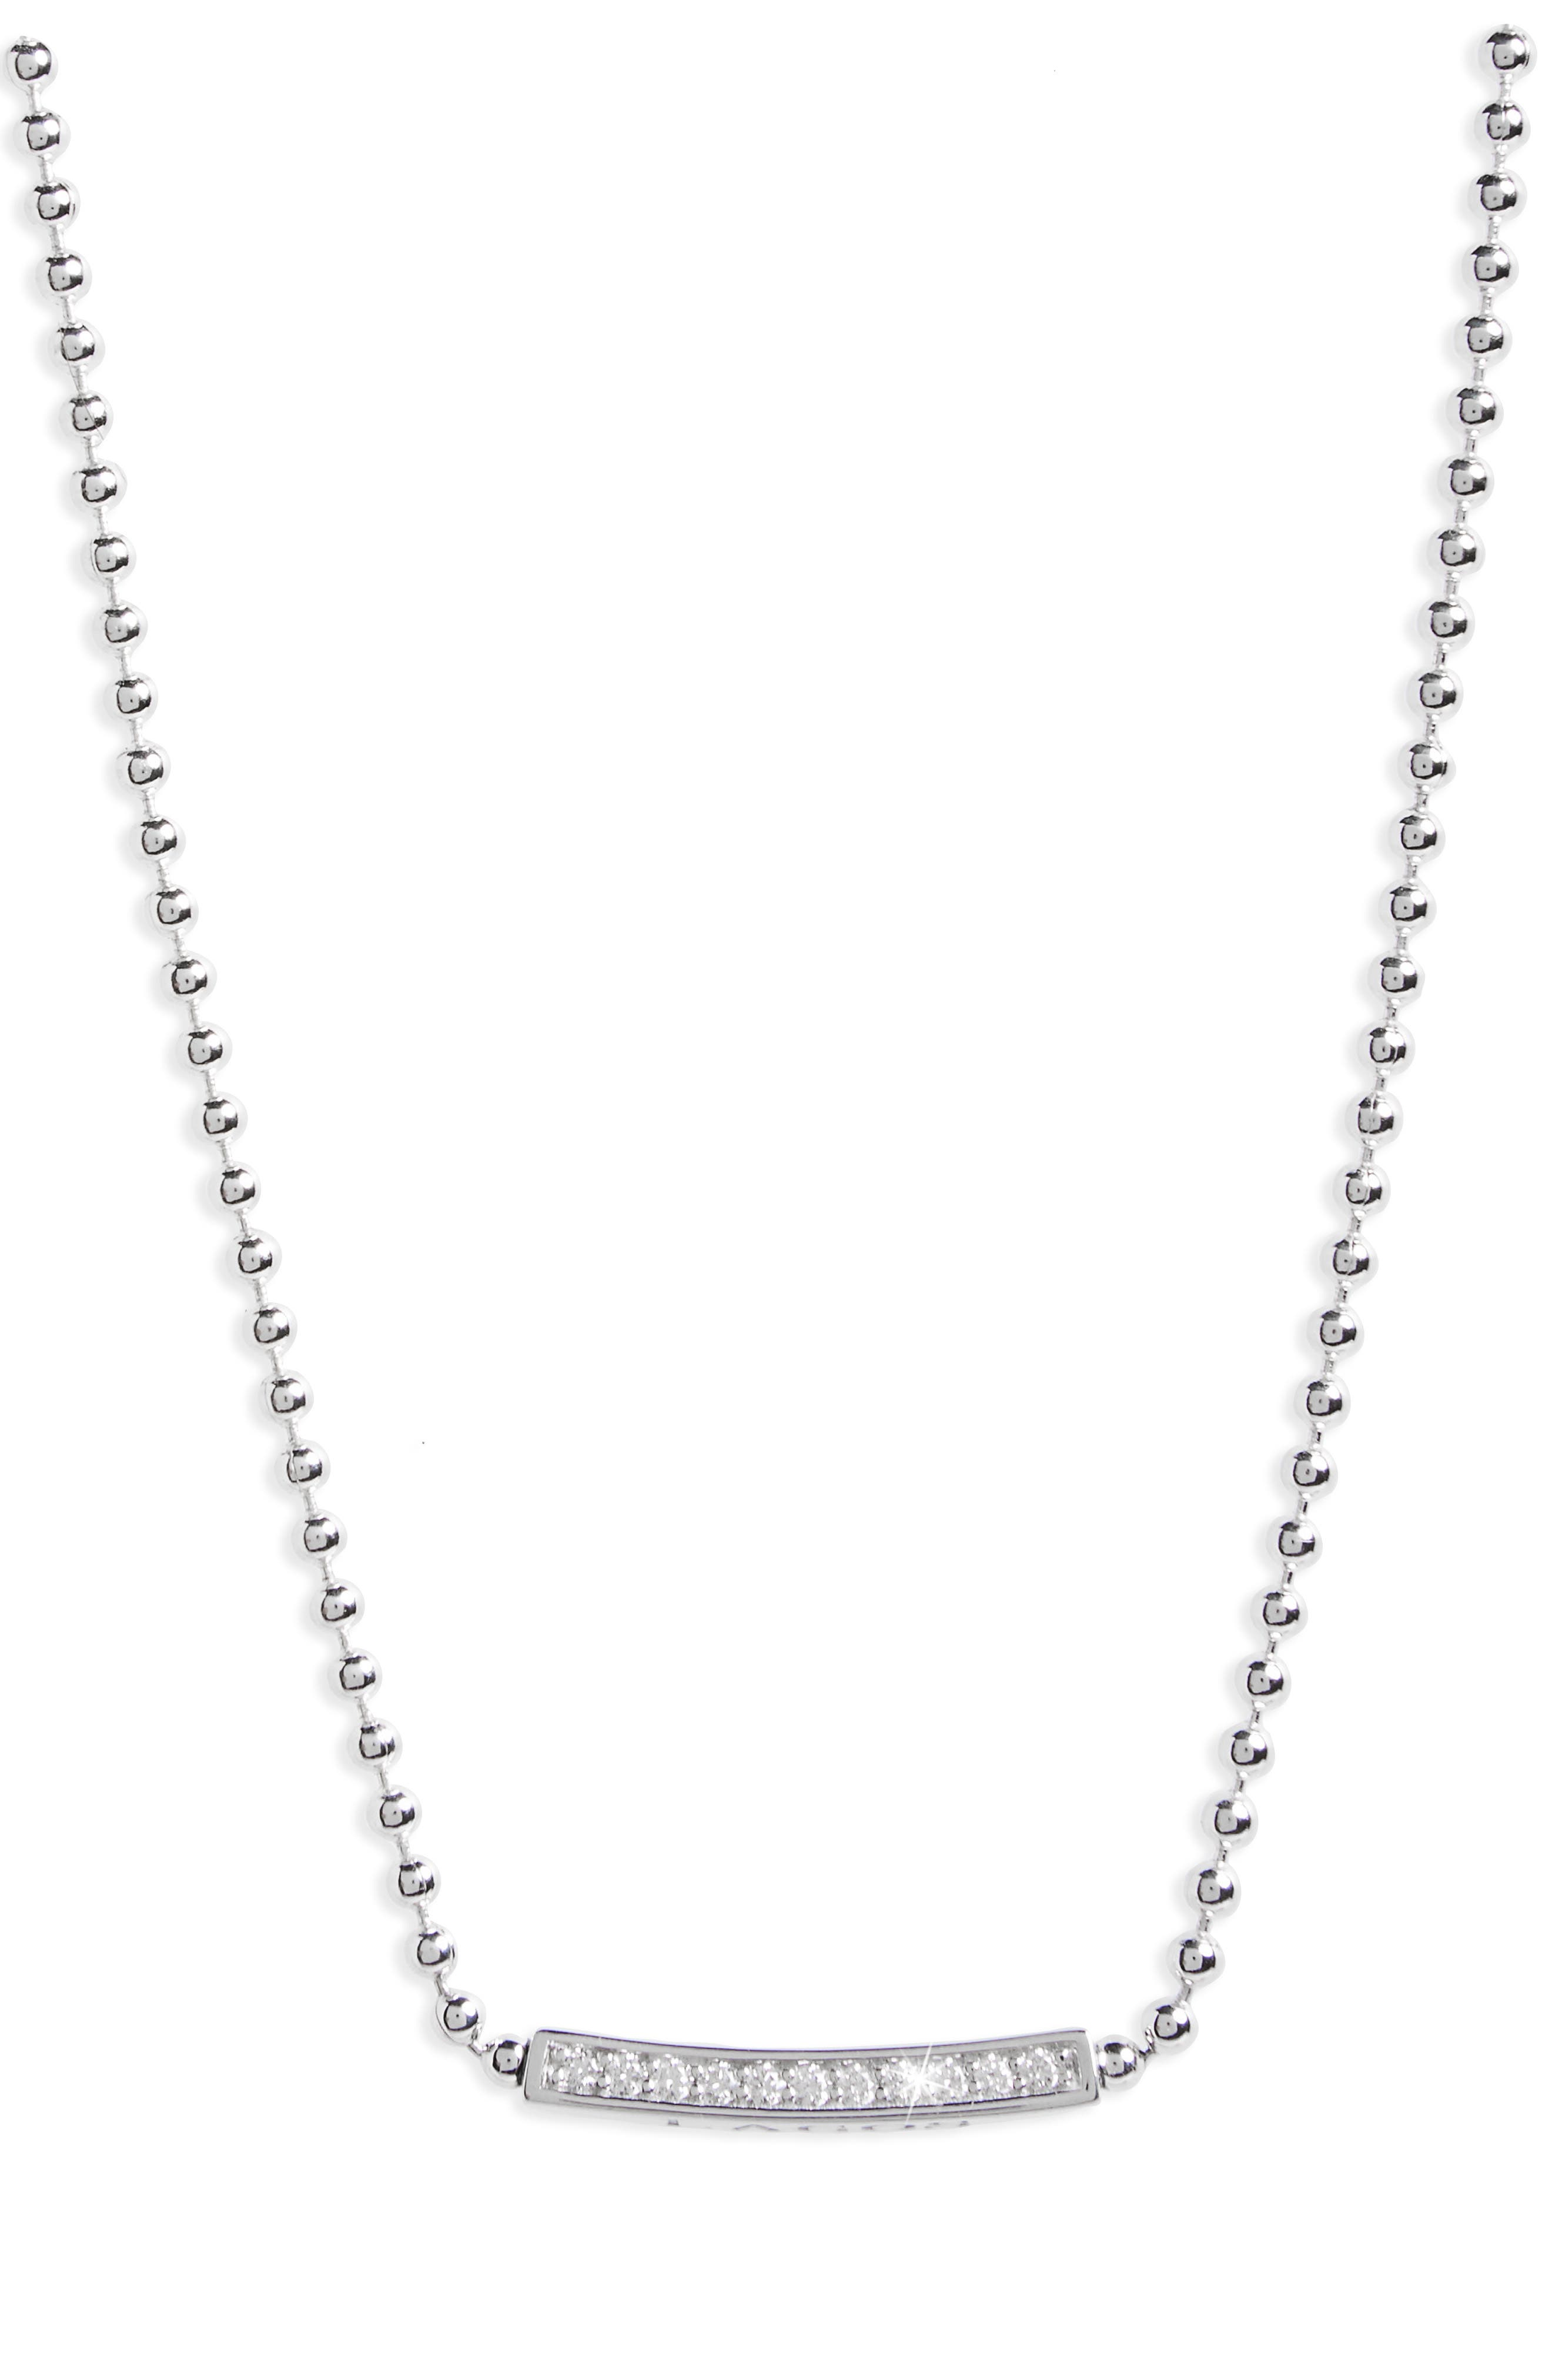 Caviar Spark Diamond Pendant Necklace,                             Main thumbnail 1, color,                             Silver/ Diamond